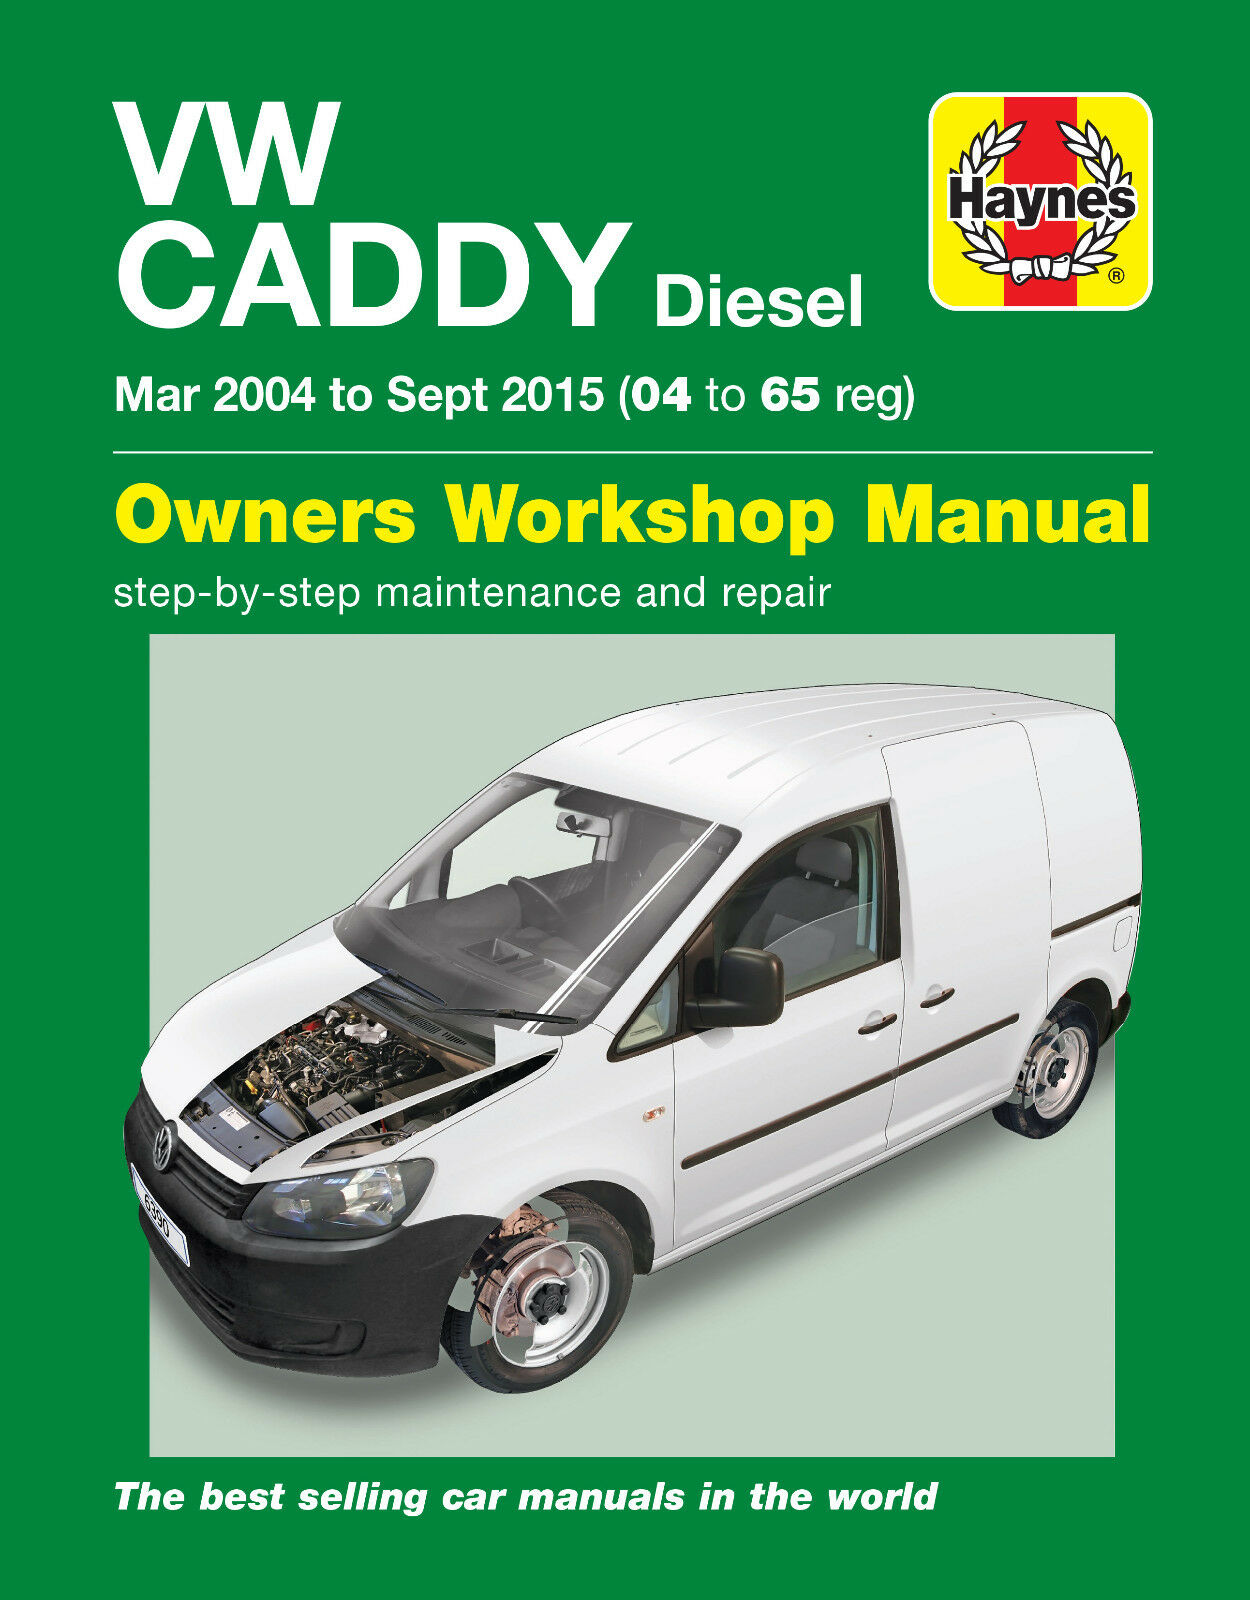 HAYNES 6390 MANUAL VW VOLKSWAGEN CADDY MAR 2004 TO SEP 2015 (04 - 65 REG) DIESEL